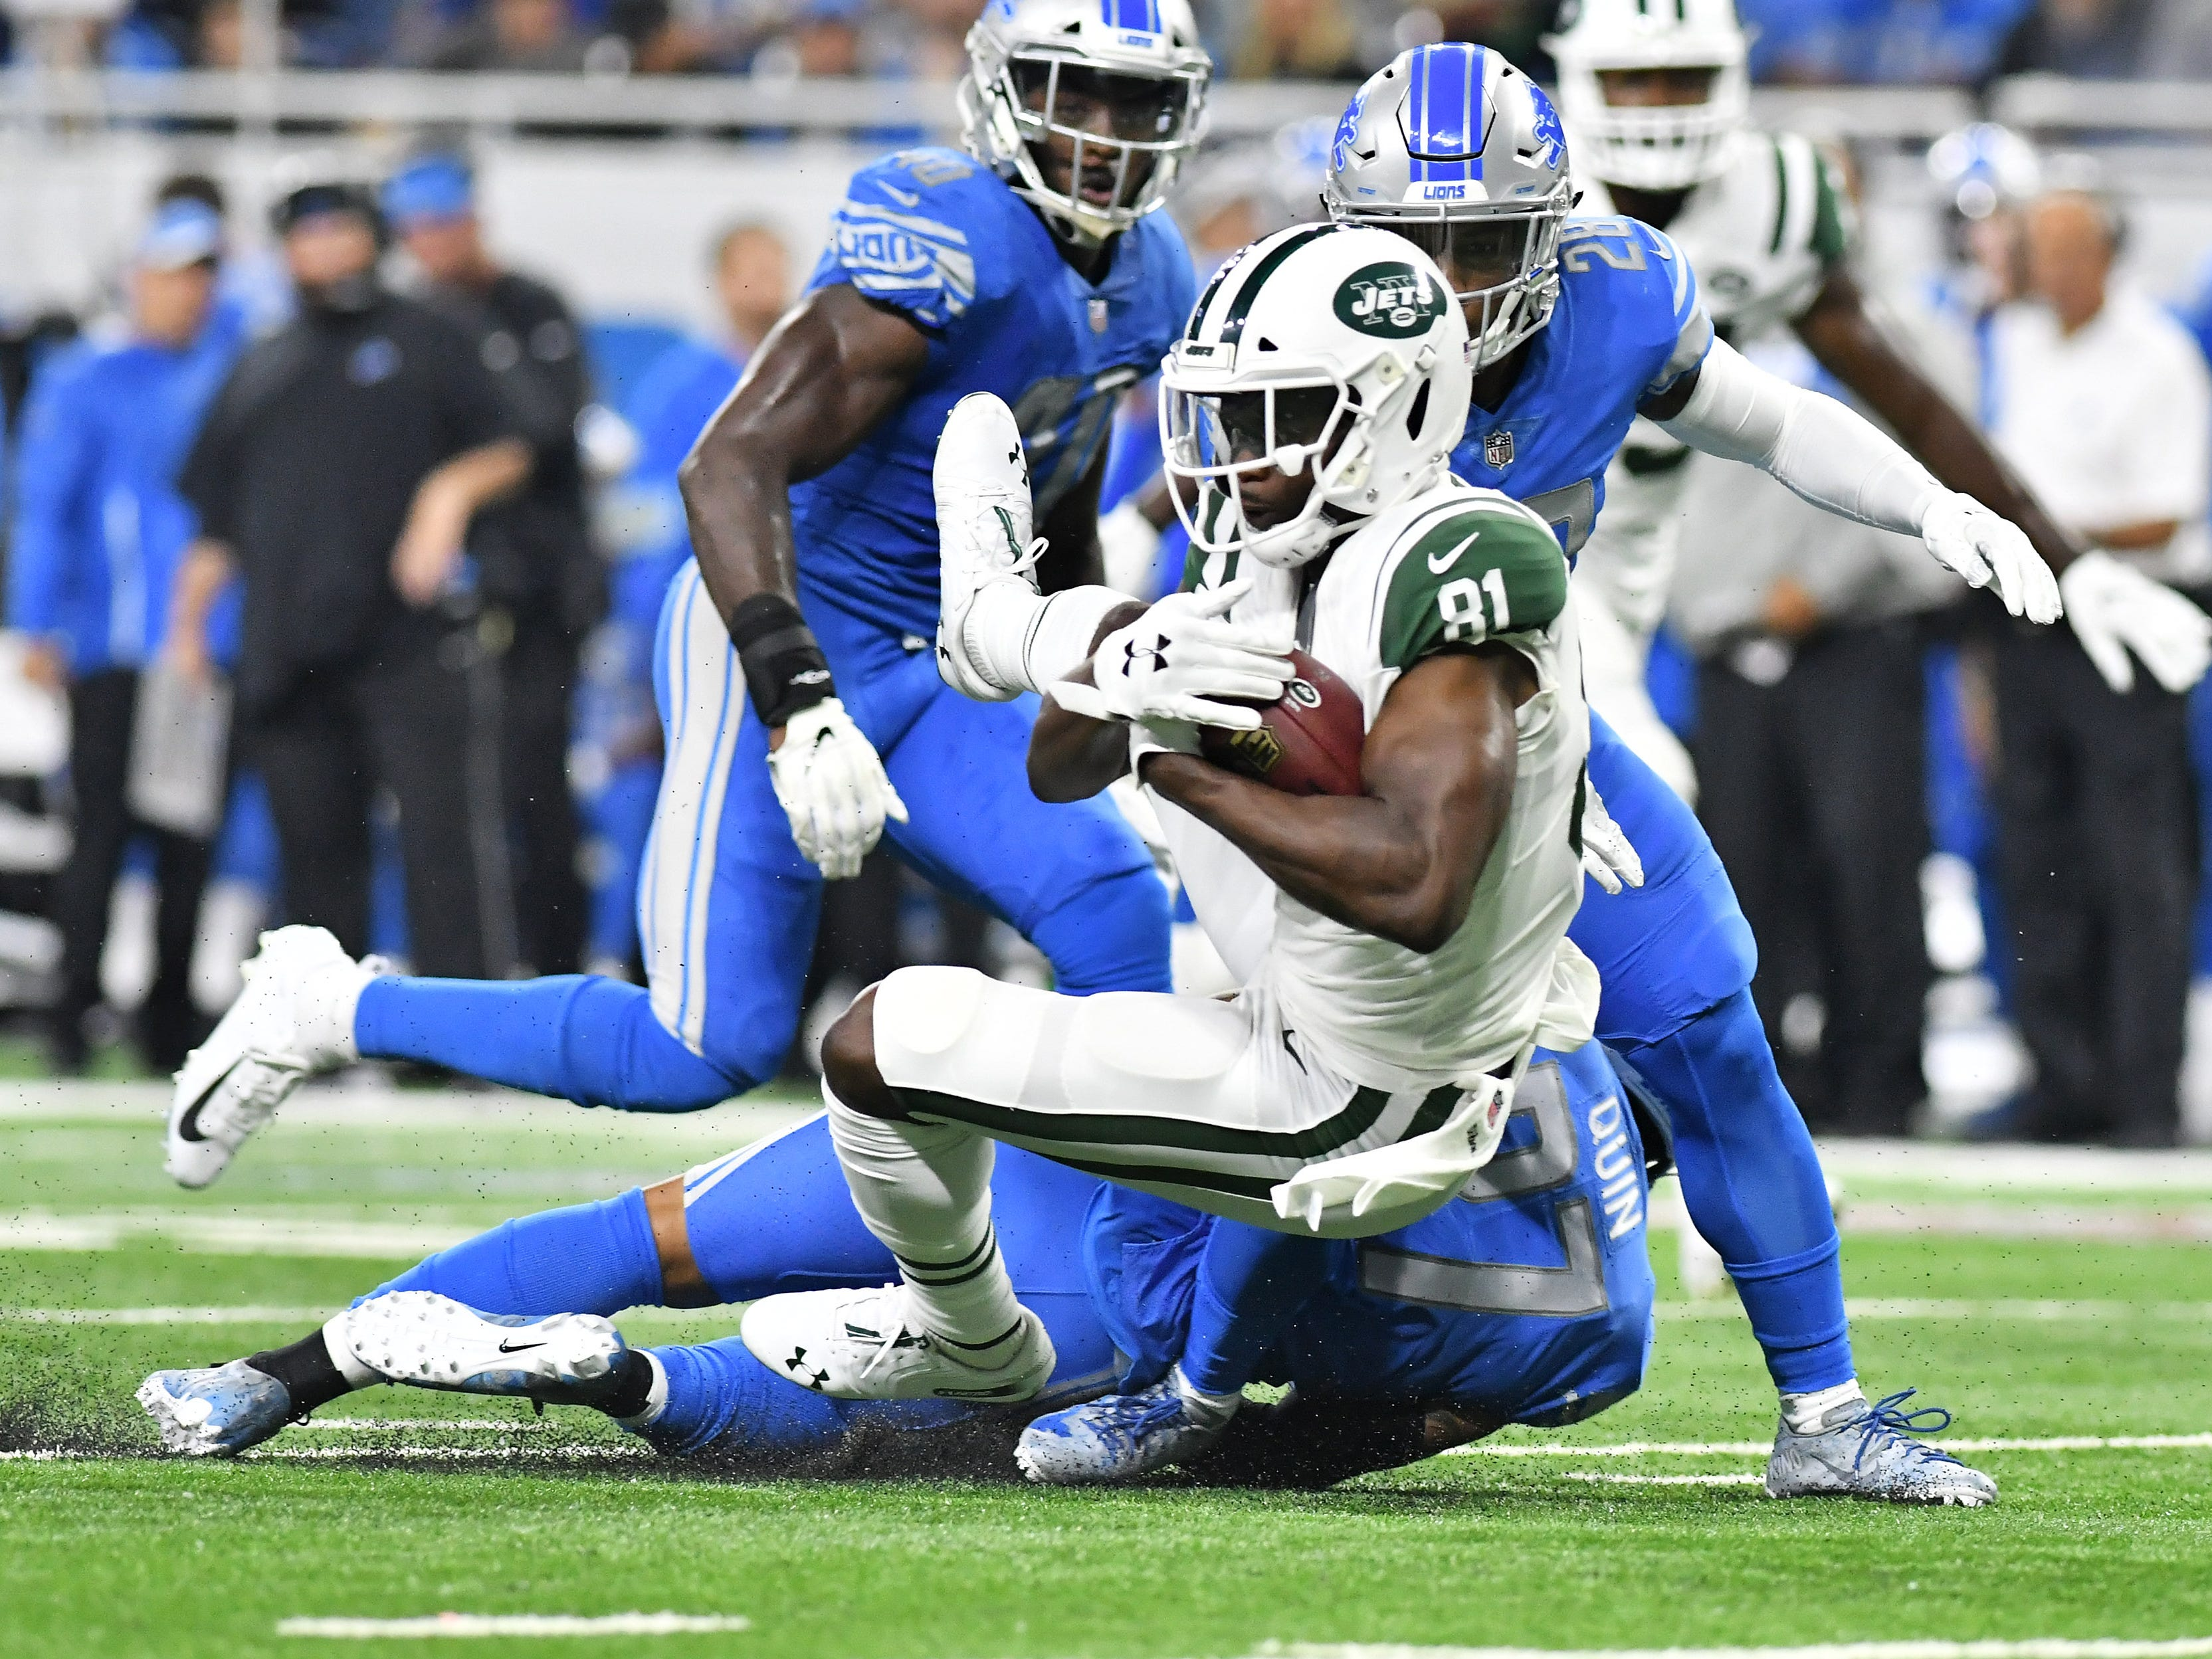 Lions Glover Quin, bottom, and Quandre Diggs converge on Jets' Quincy Enunwa (81) in the first quarter.